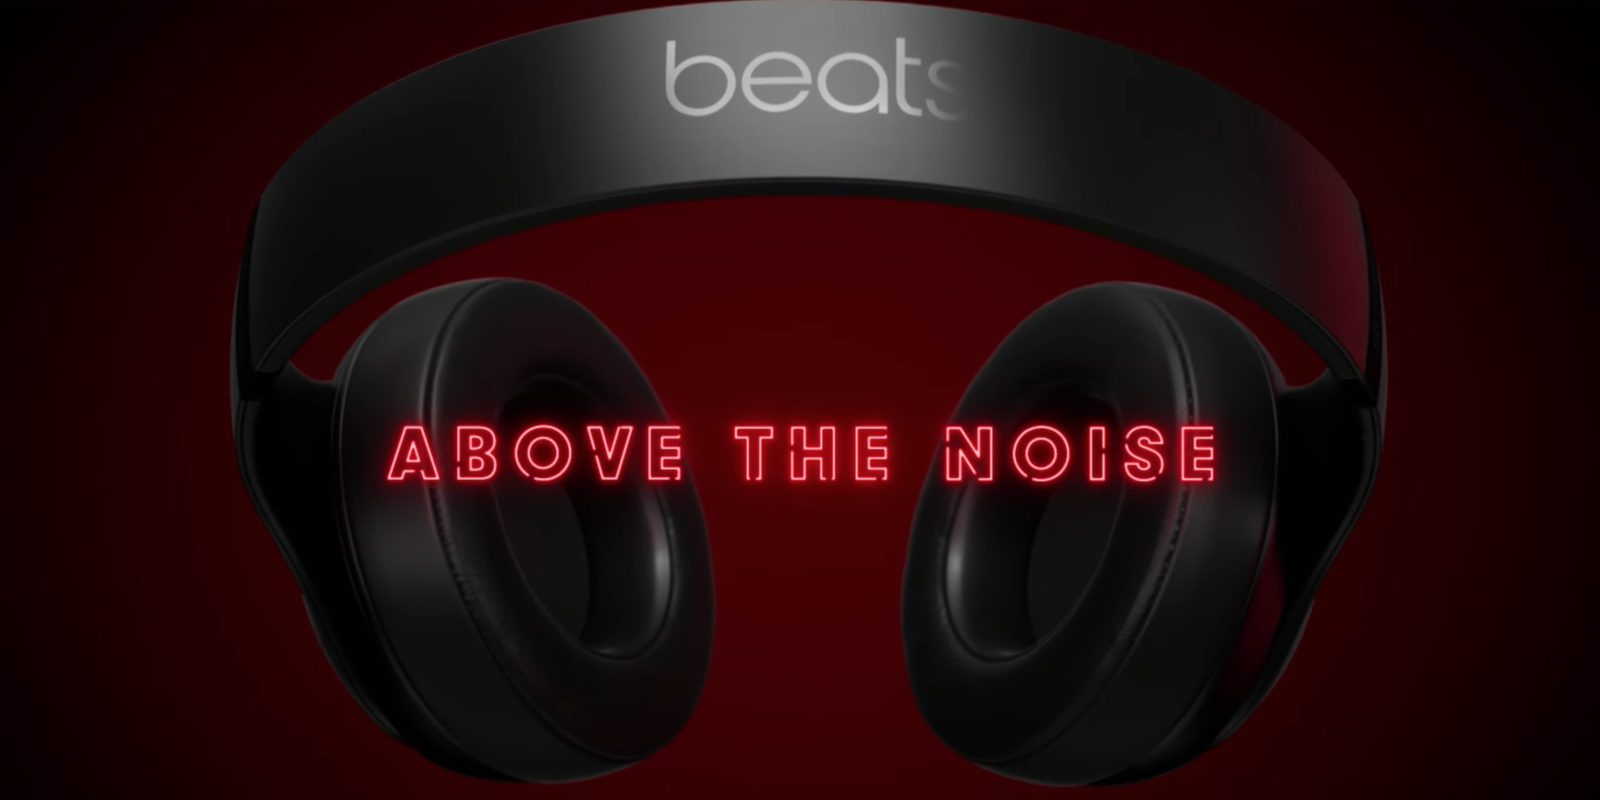 de0388dde3a Beats Electronics was created in 2006 by Dr. Dre and Jimmy Iovine. They  focused on premium speakers and headphones. In 2011, it was estimated they  had over ...